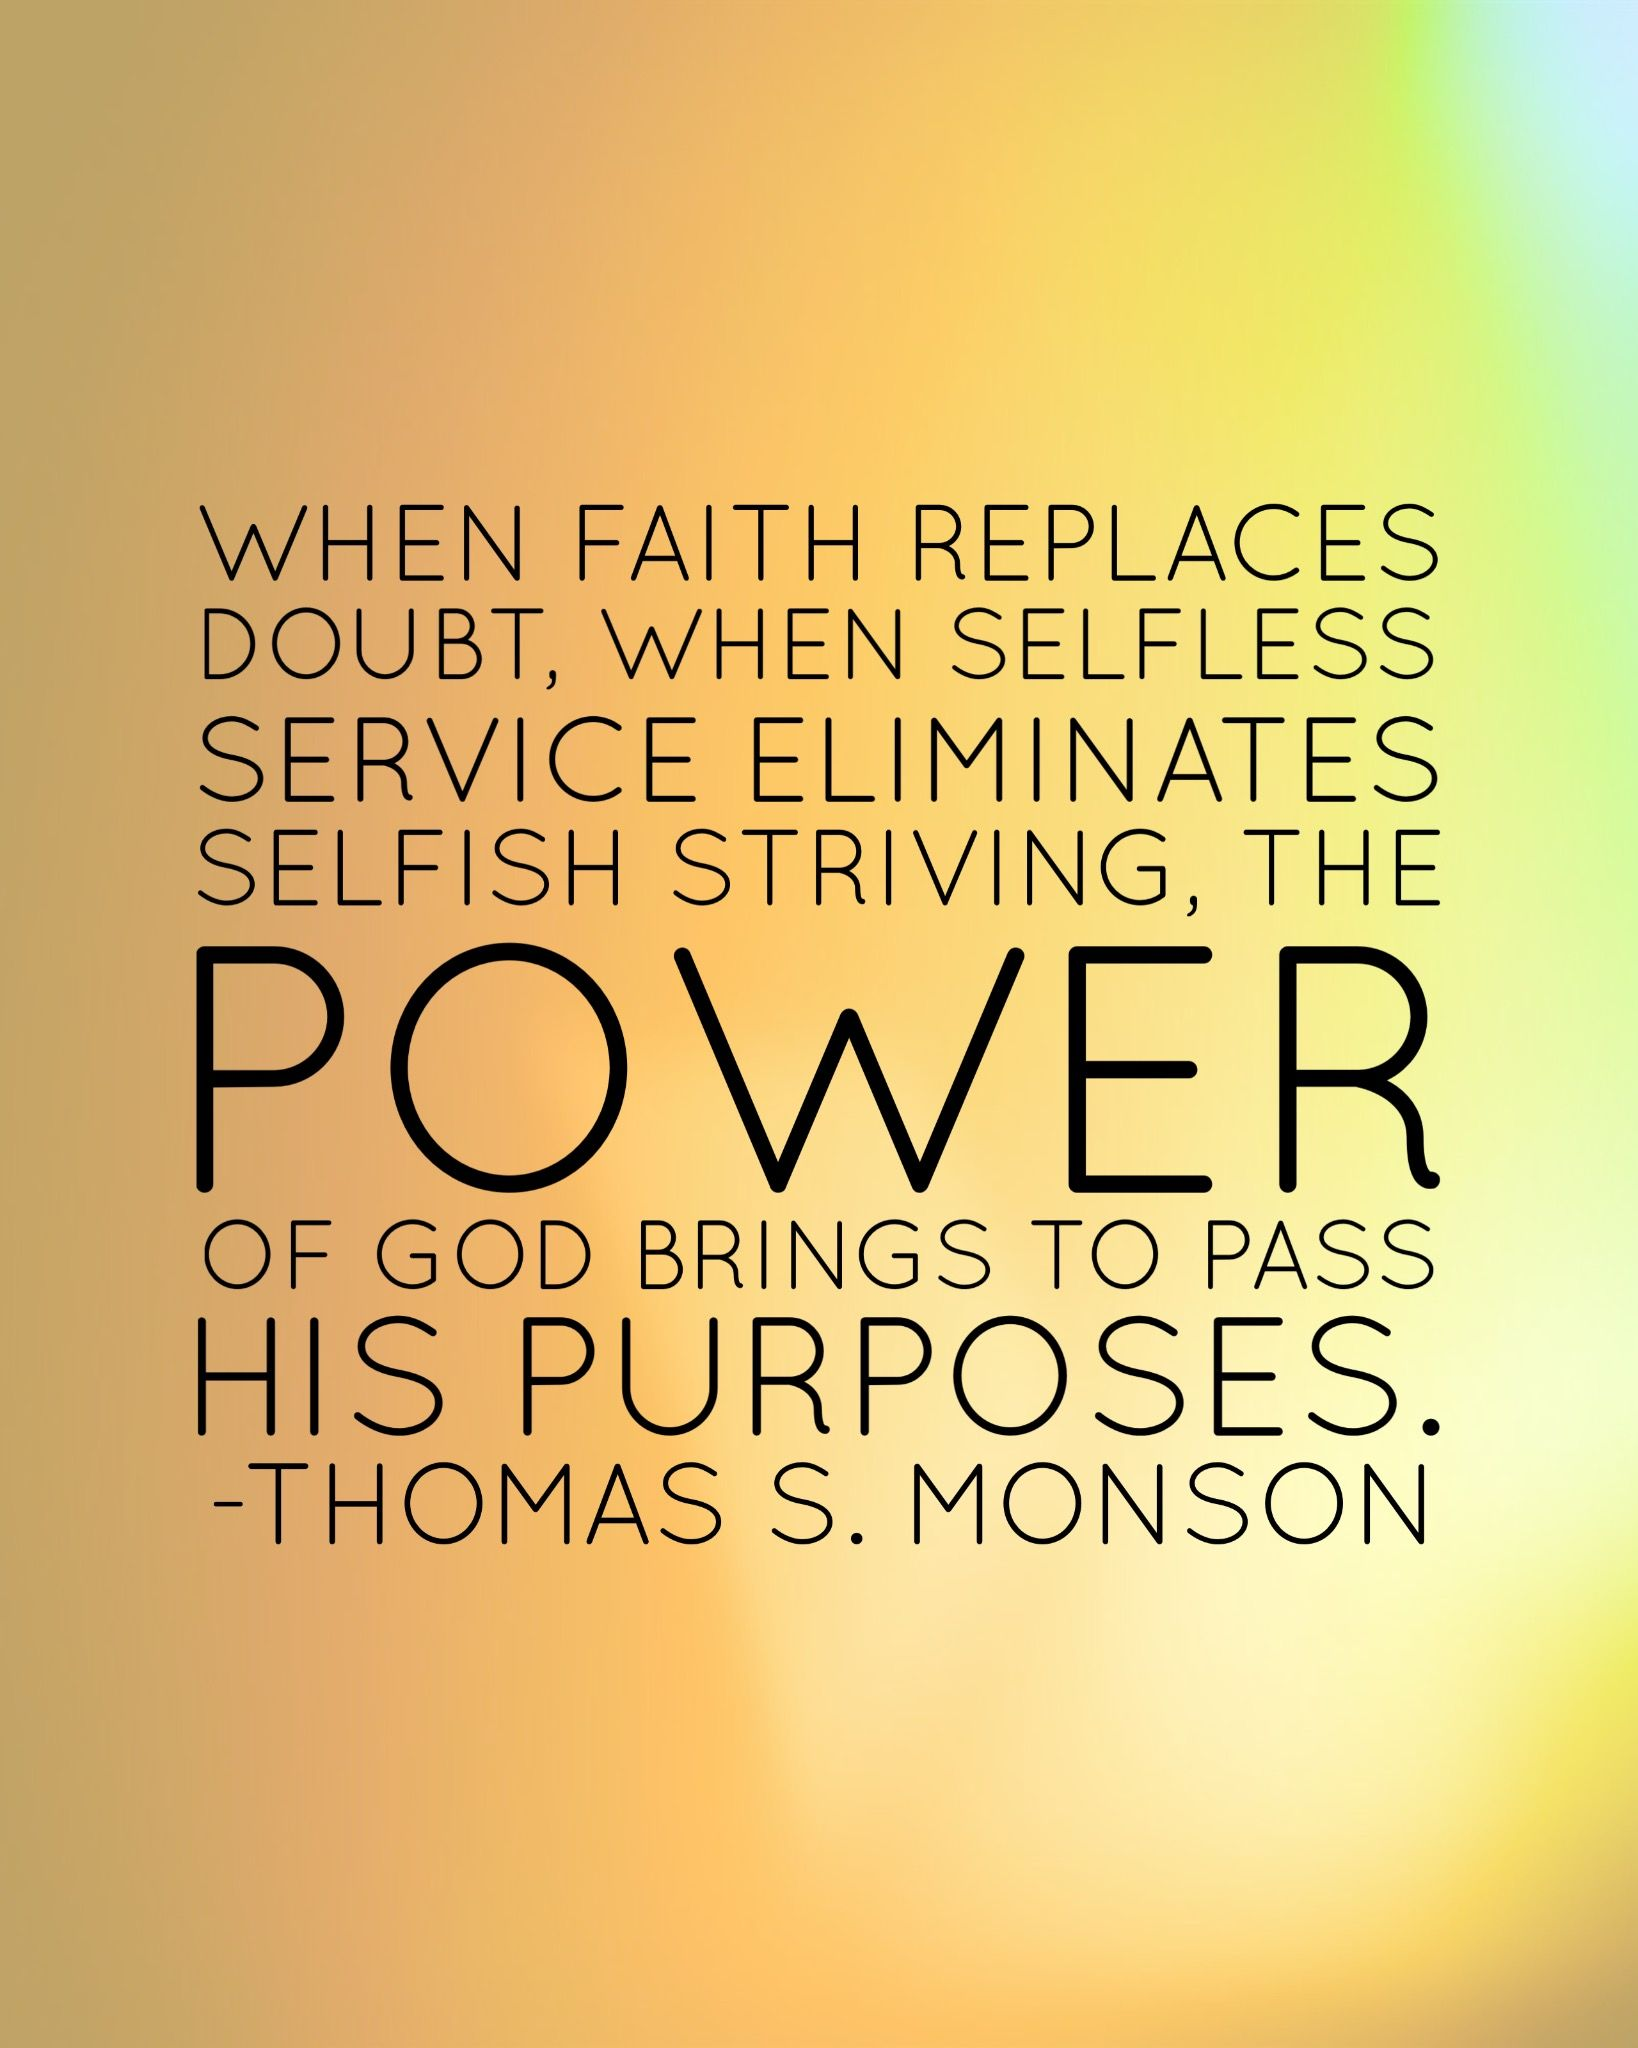 mission power of god brings to pass his purposes service  when replaces doubt when selfless eliminates selfish striving the of god brings to pass his purposes